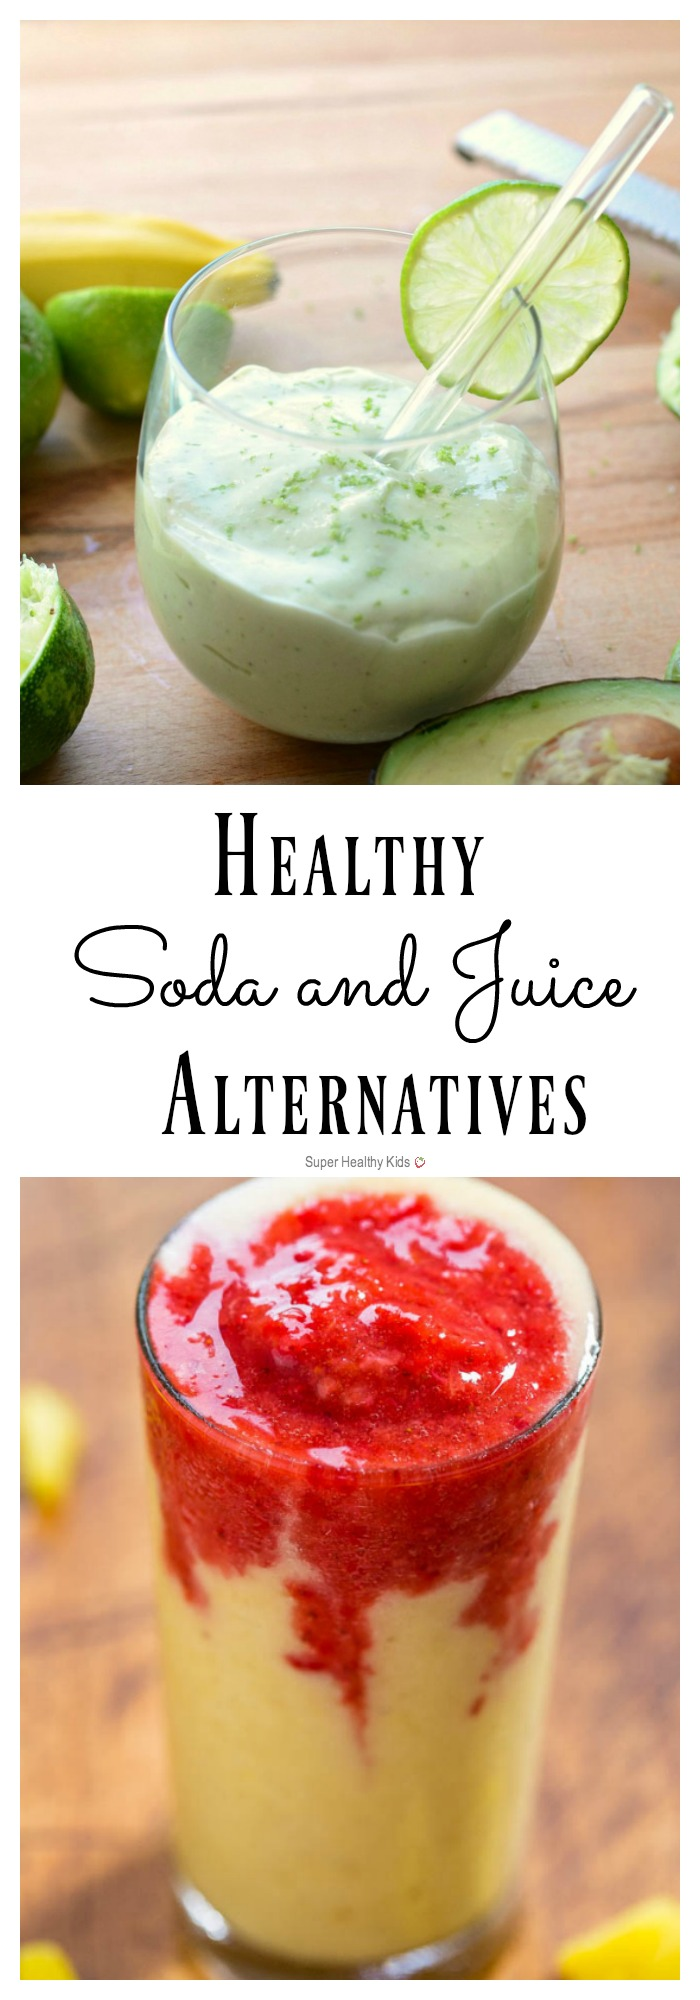 healthy soda and juice alternatives 10 delicious smoothie recipes which are the best alternative to